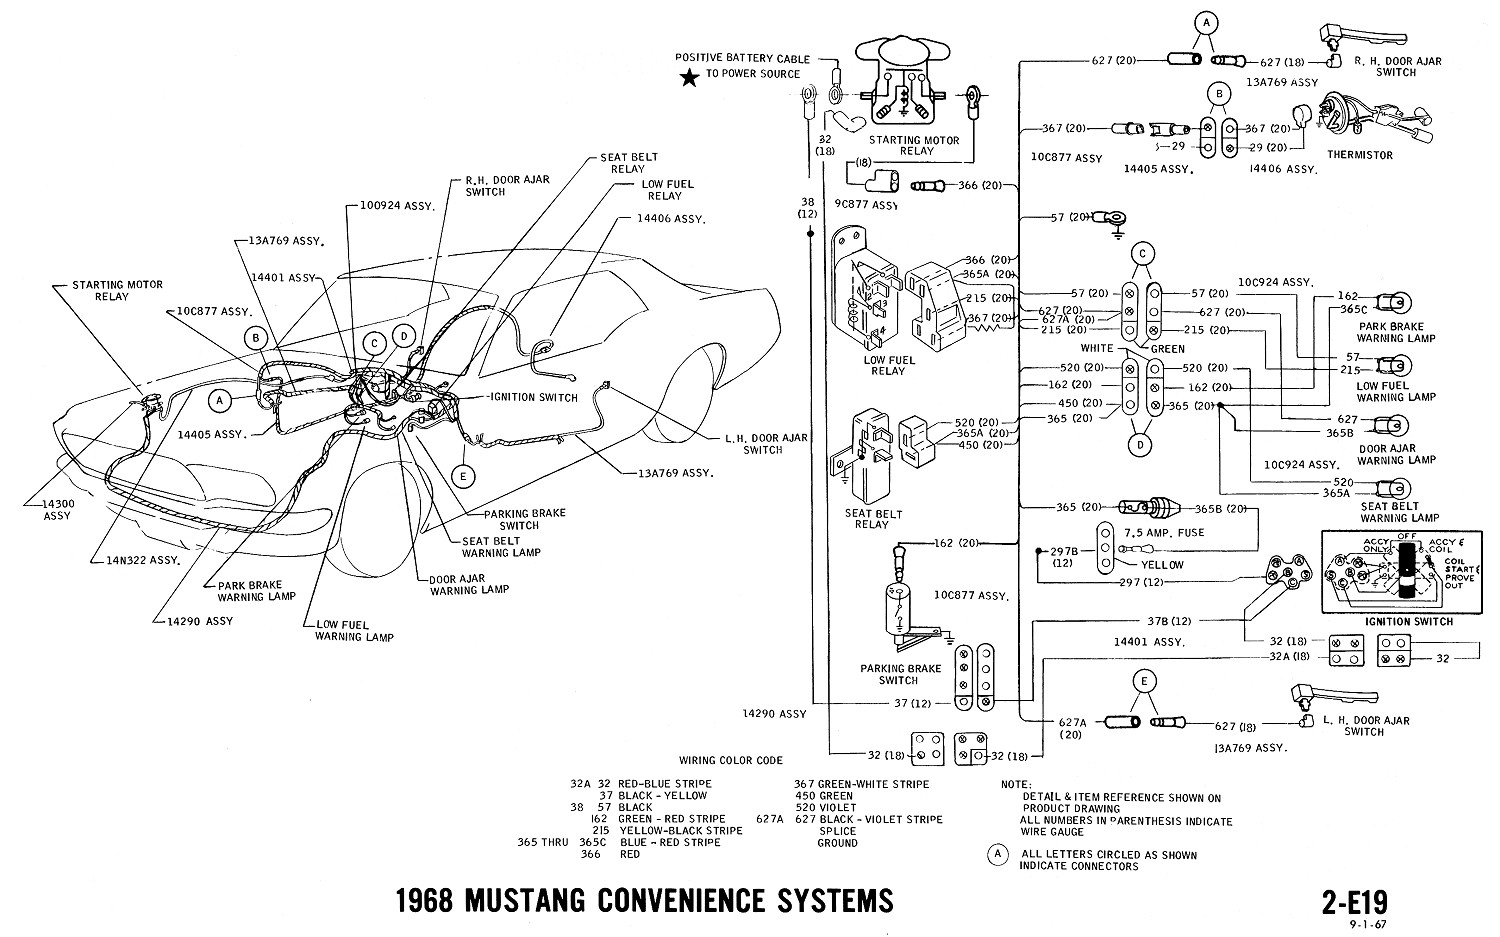 hight resolution of 1968 mustang wiring diagrams and vacuum schematics average joe1968 mustang wiring diagram convenience systems